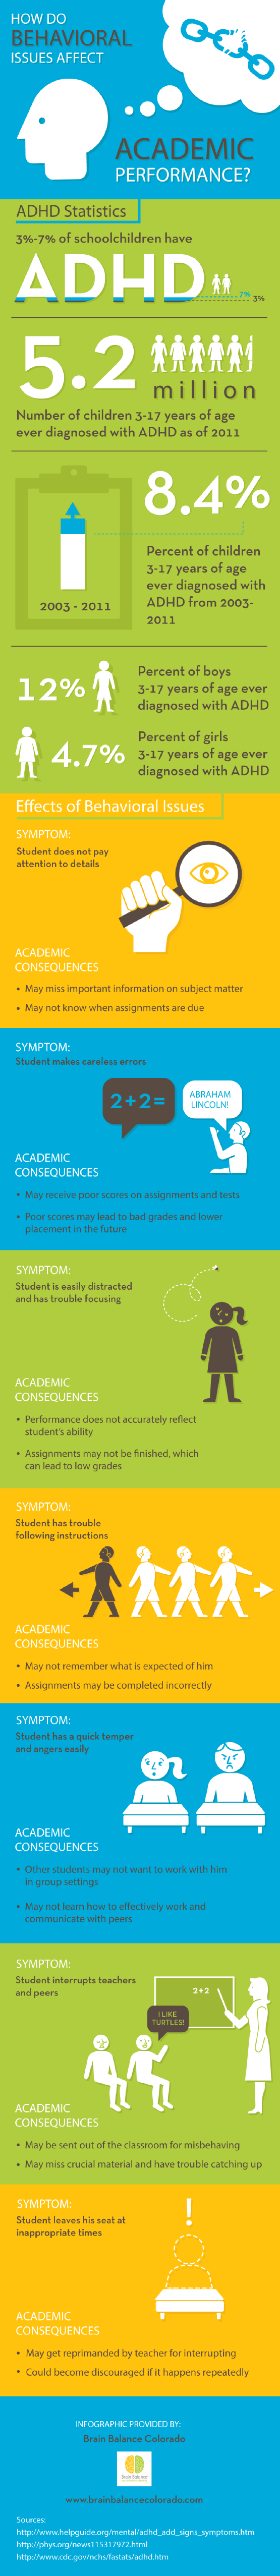 How Do Behavioral Issues Affect Academic Performance